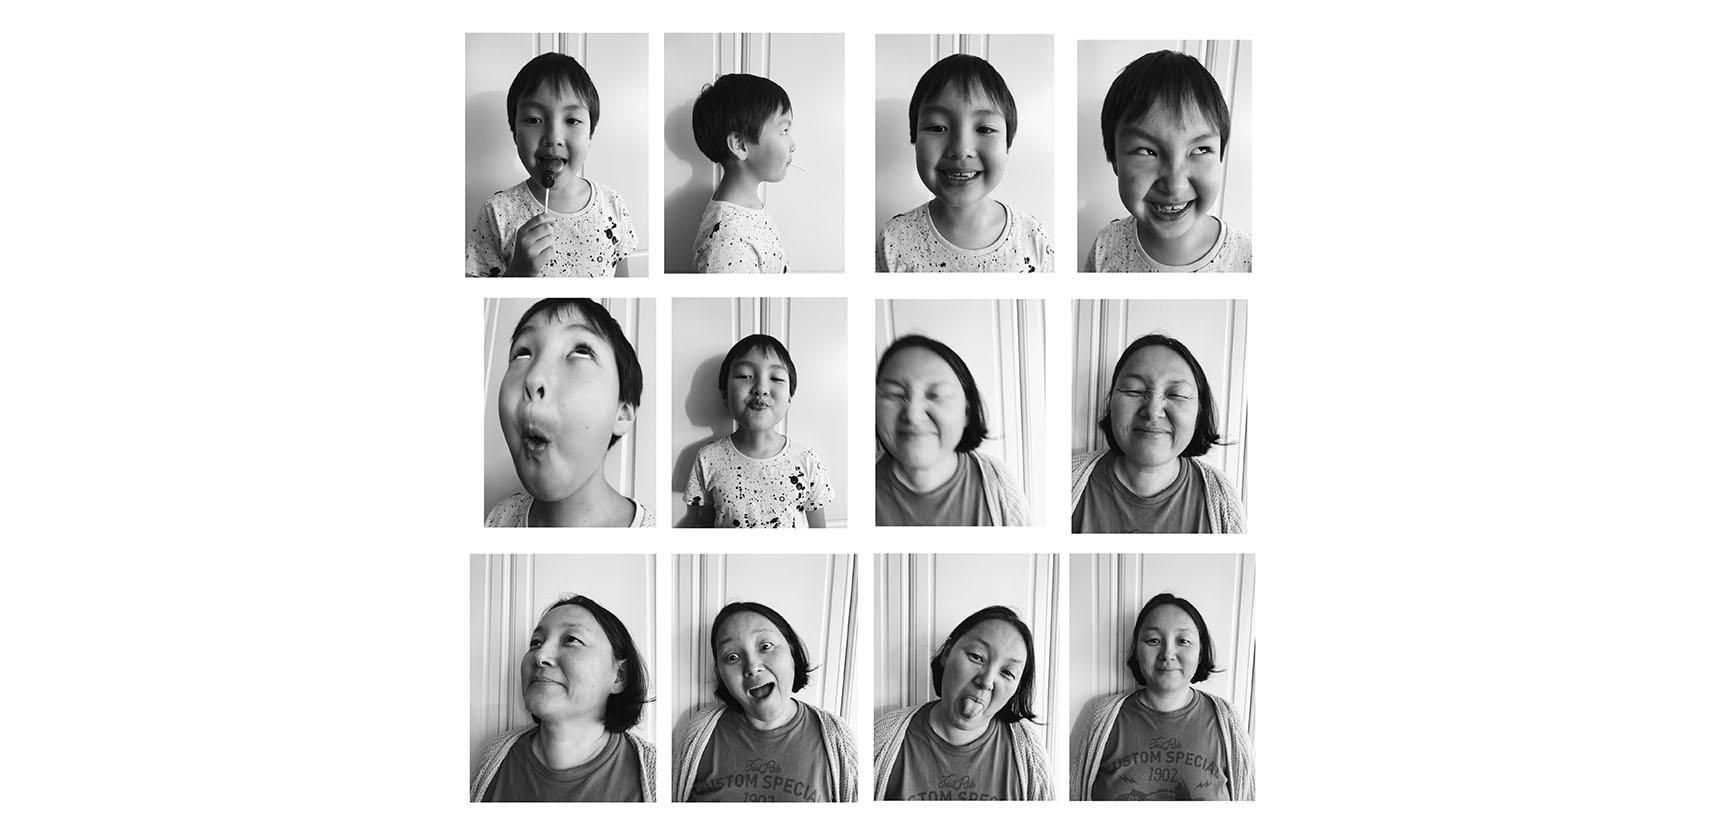 12 passport photo size images, six showing a young child and six showing a woman. In each photo the individual is looking in a different direction and has a different expression